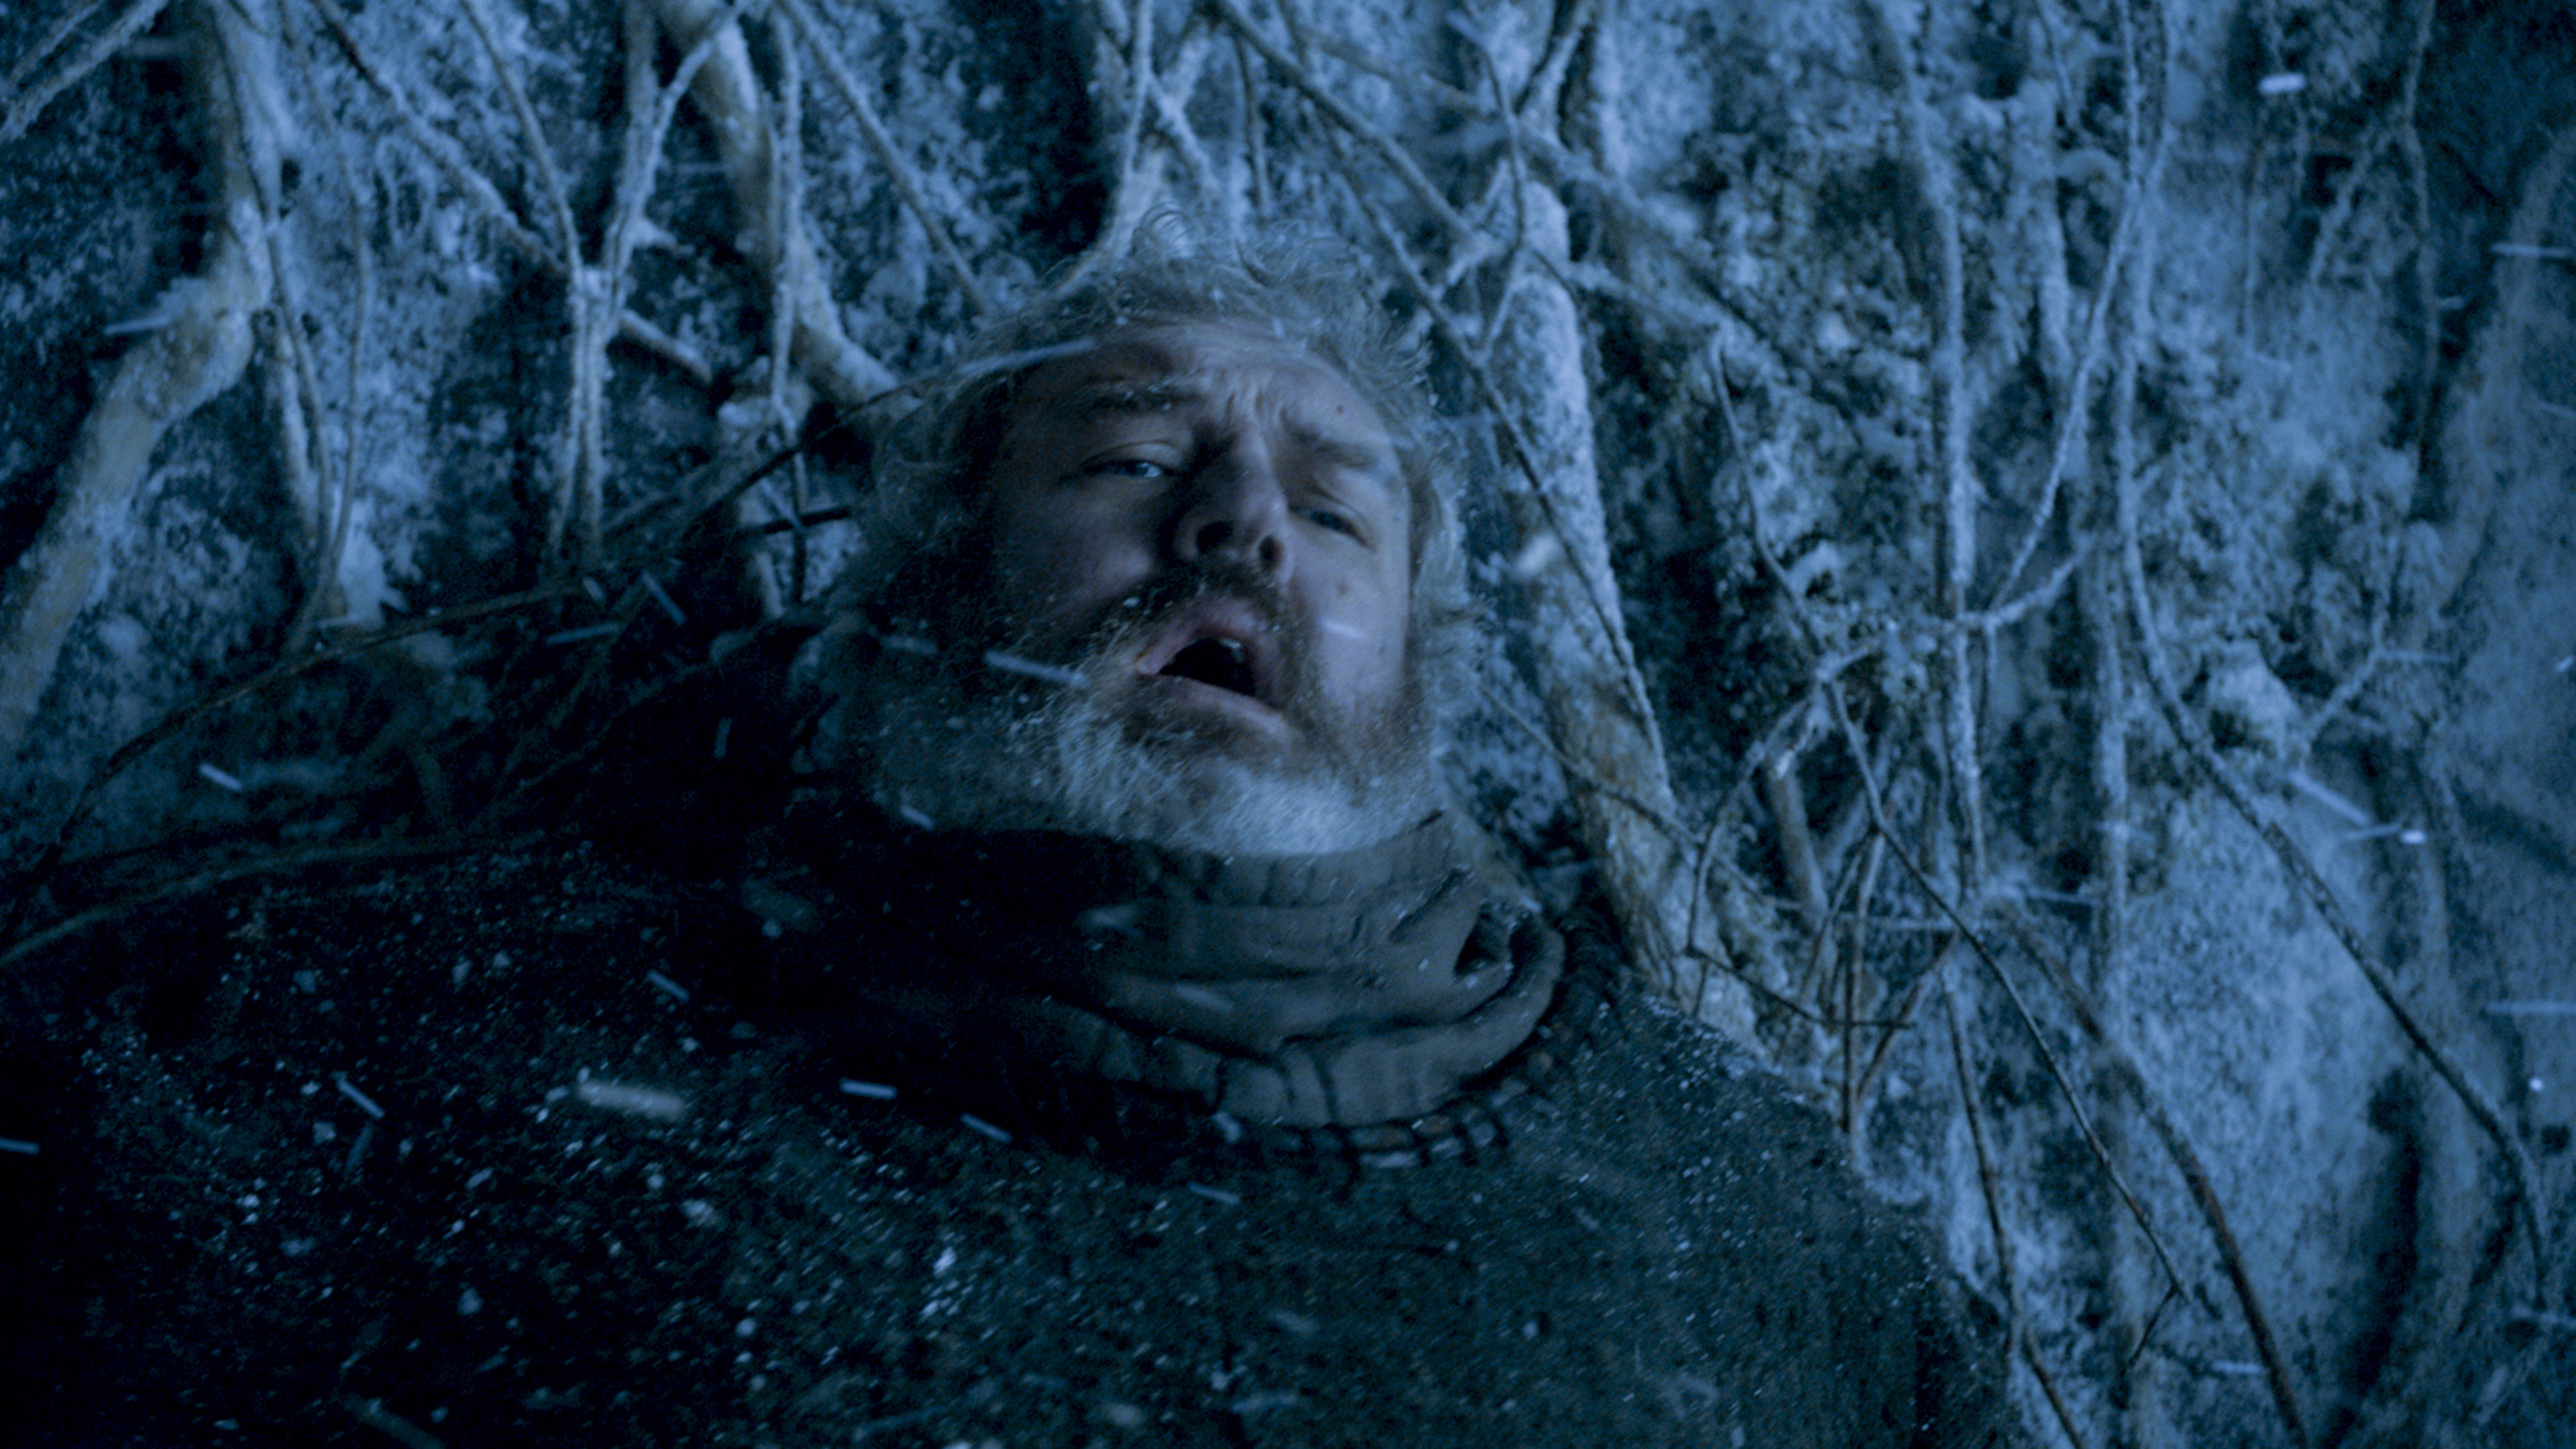 A heroic end for Hodor.